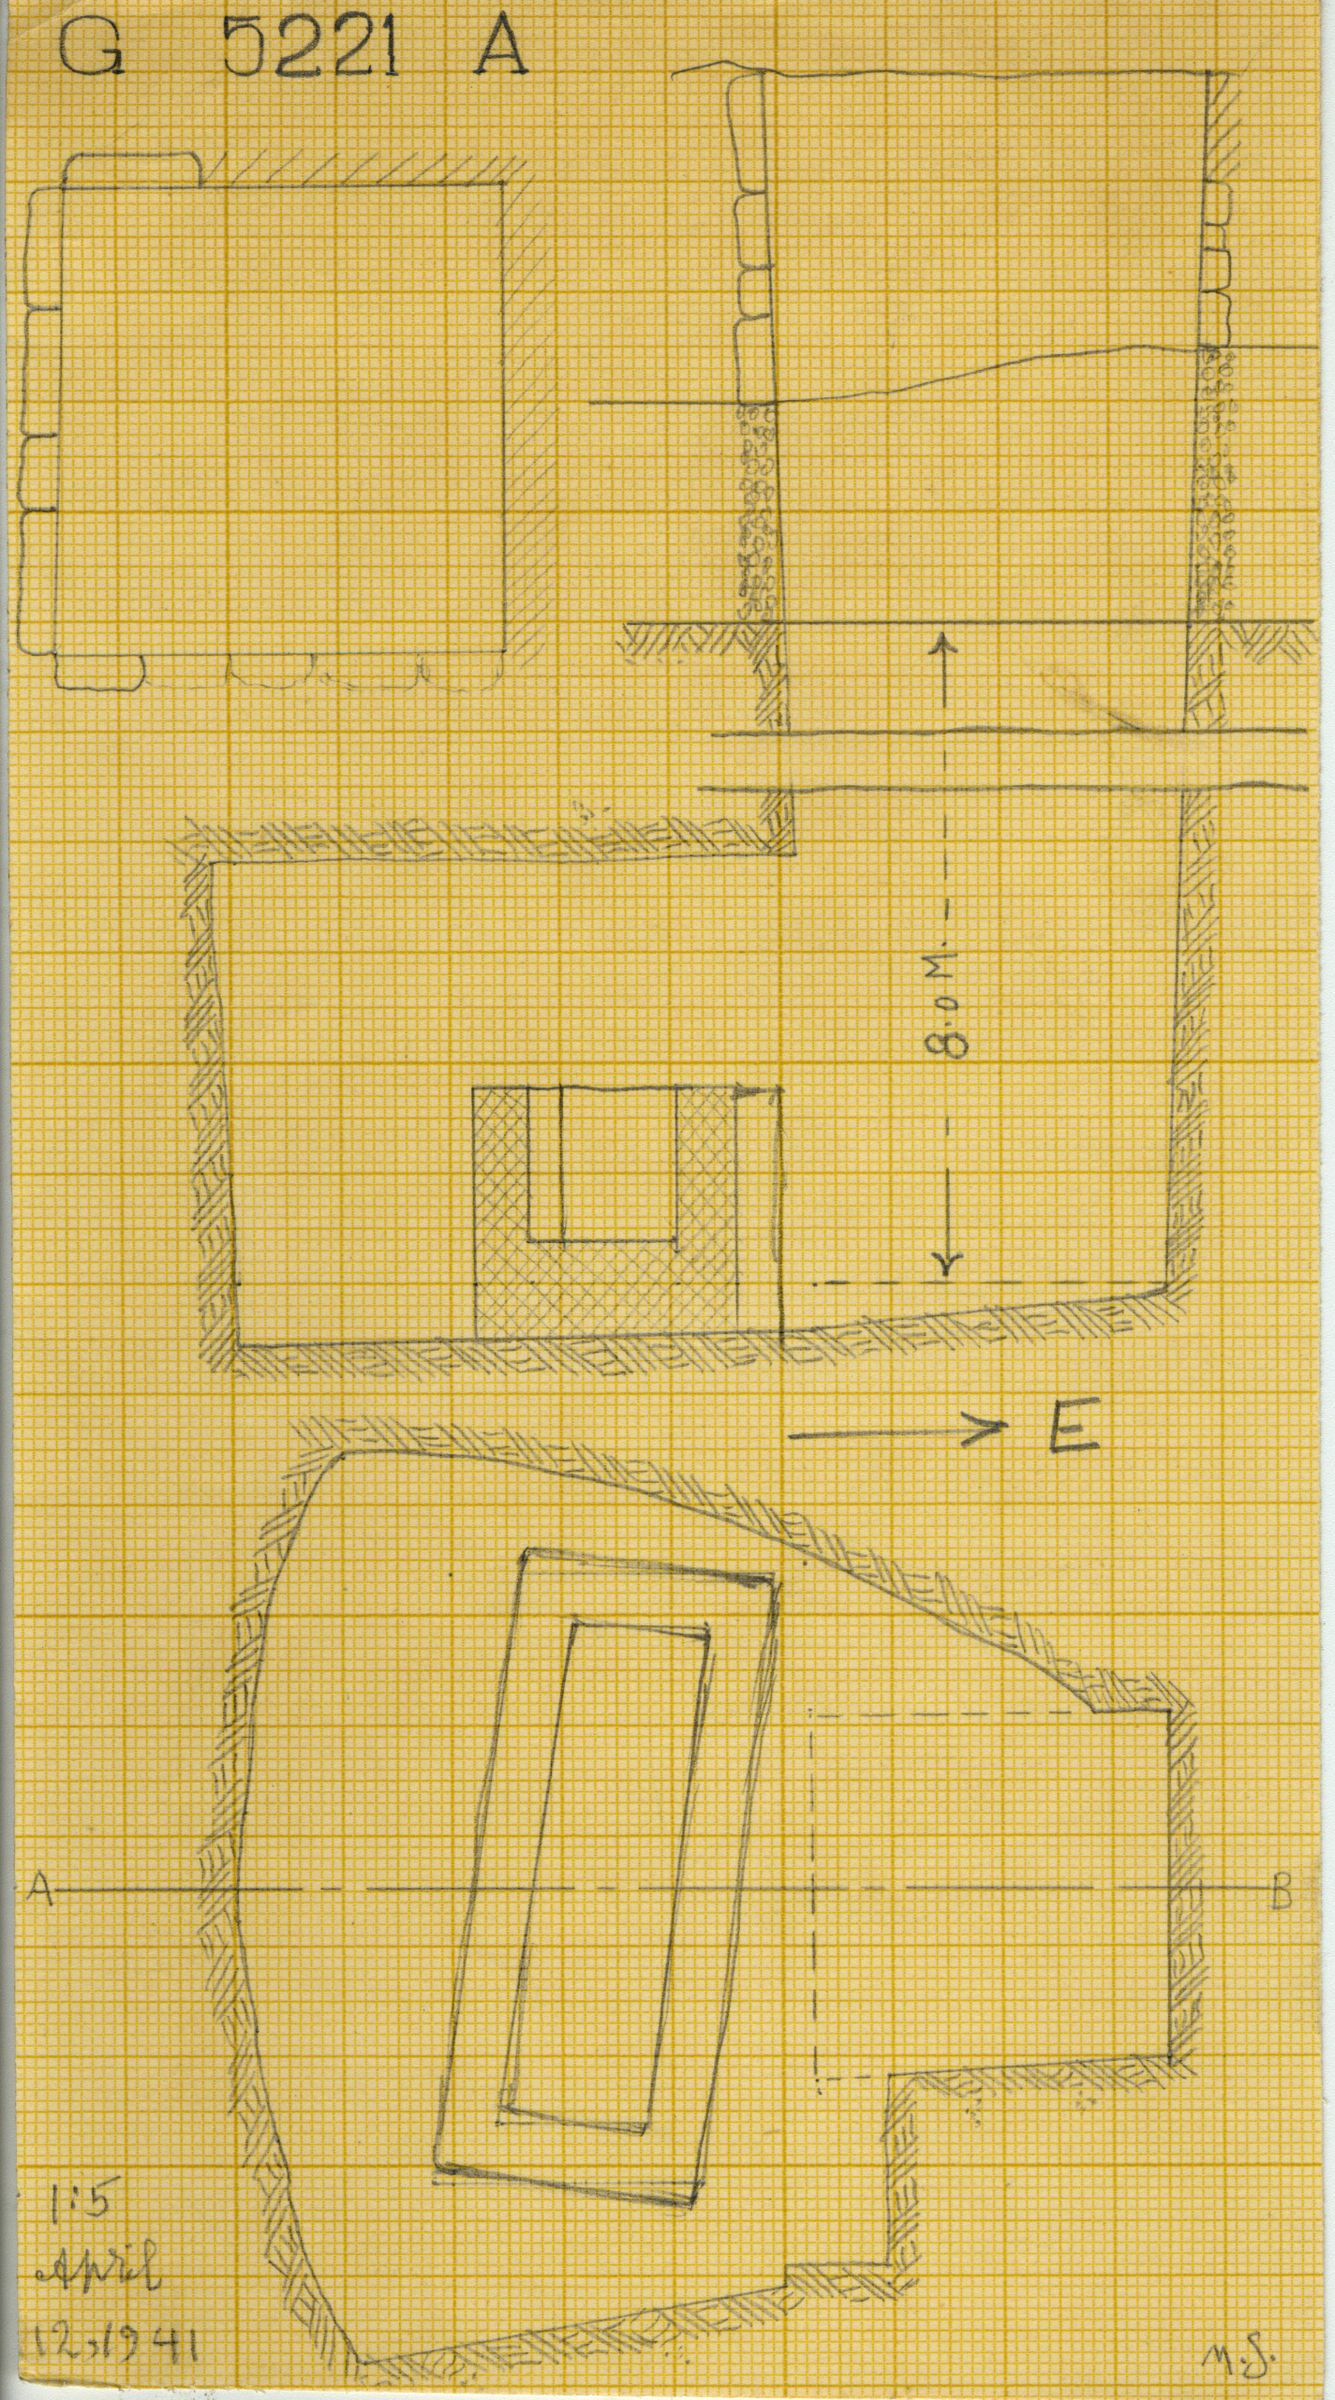 Maps and plans: G 5221, Shaft A